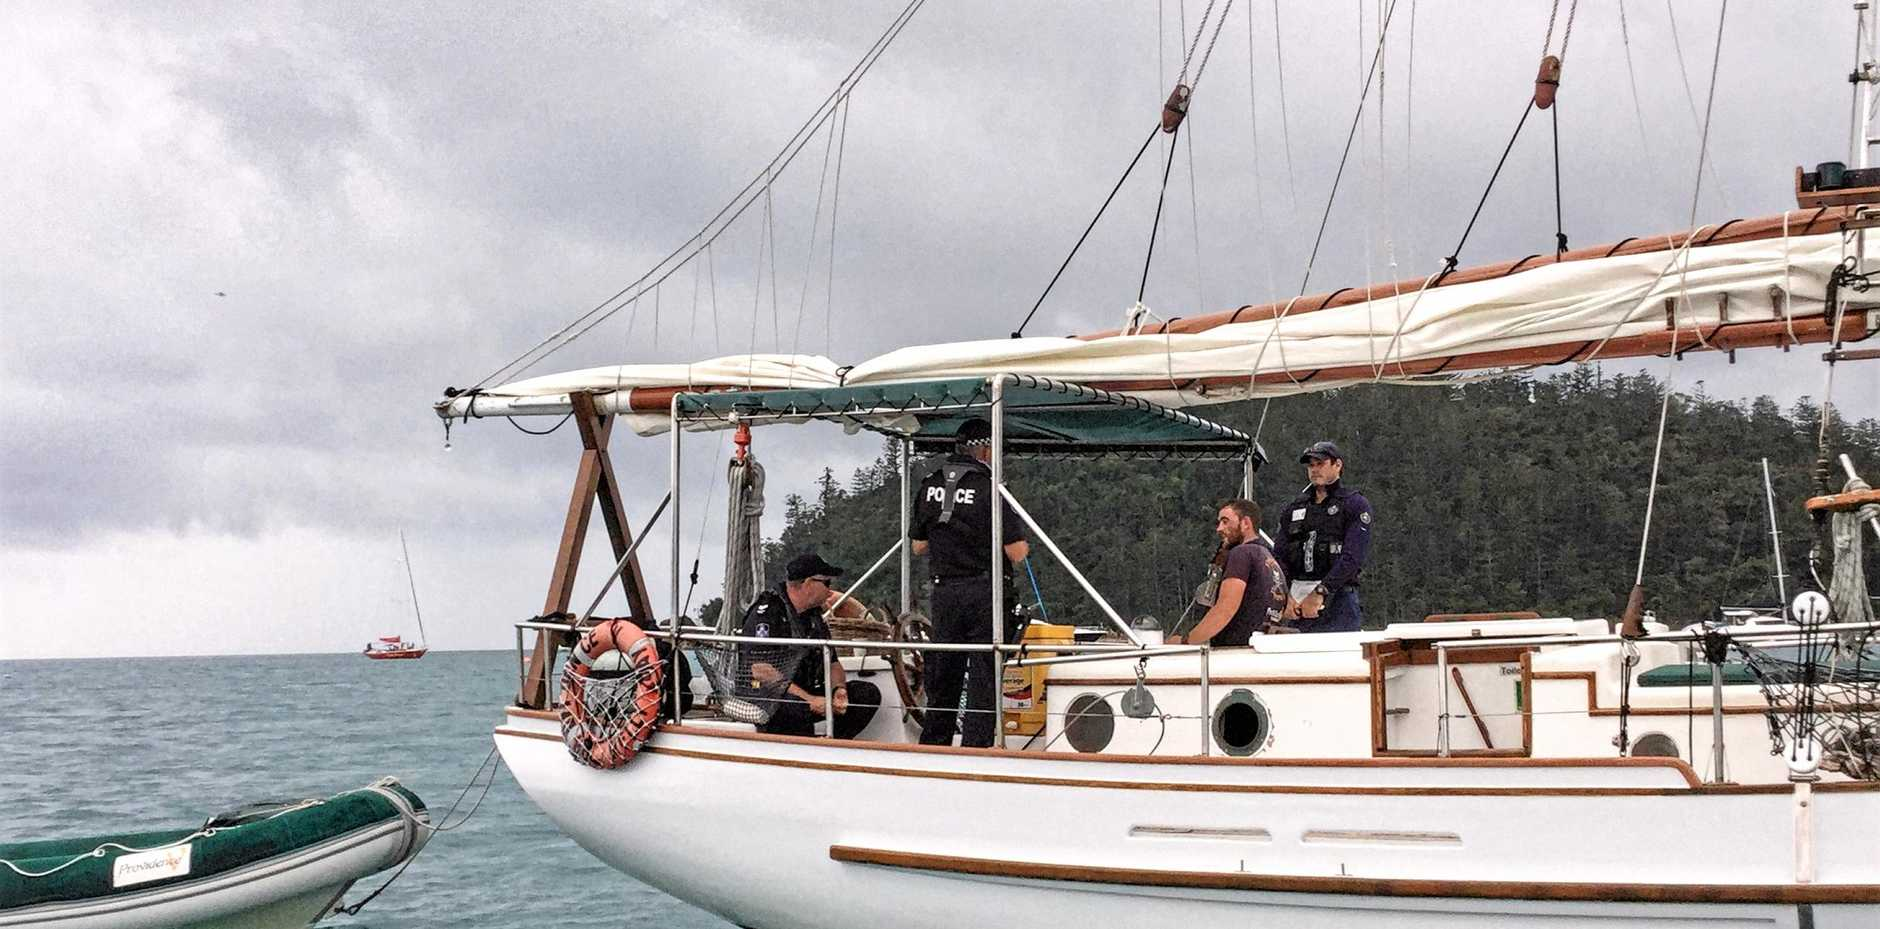 ON PATROL: Whitsunday Water Police pictured during an on-water drug testing trial last week.